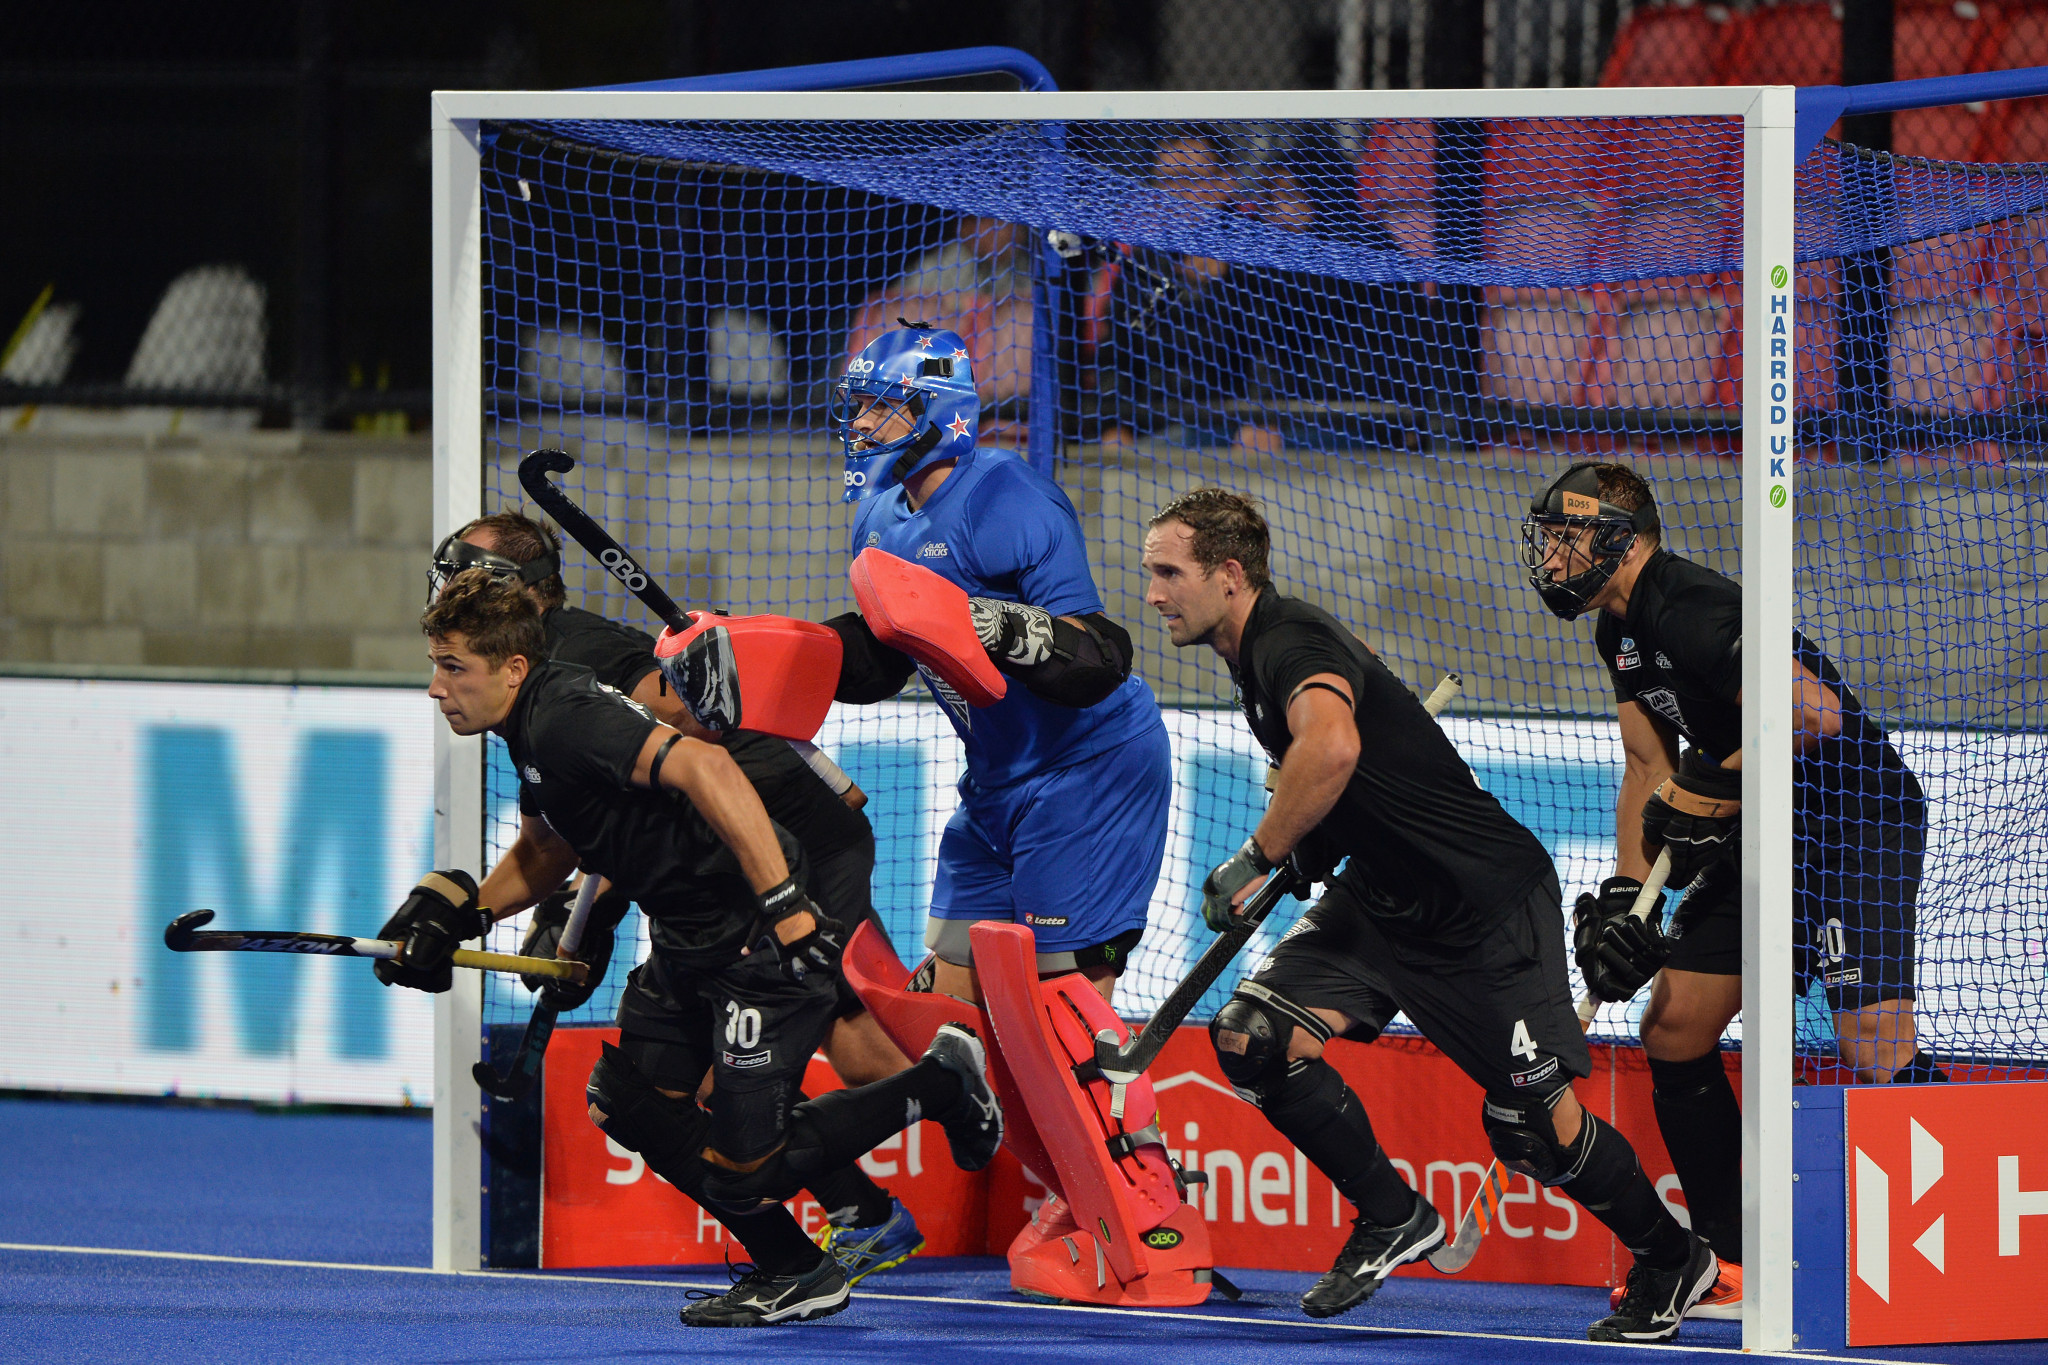 New Zealand's men picked up their first win of the FIH Pro League season ©Getty Images